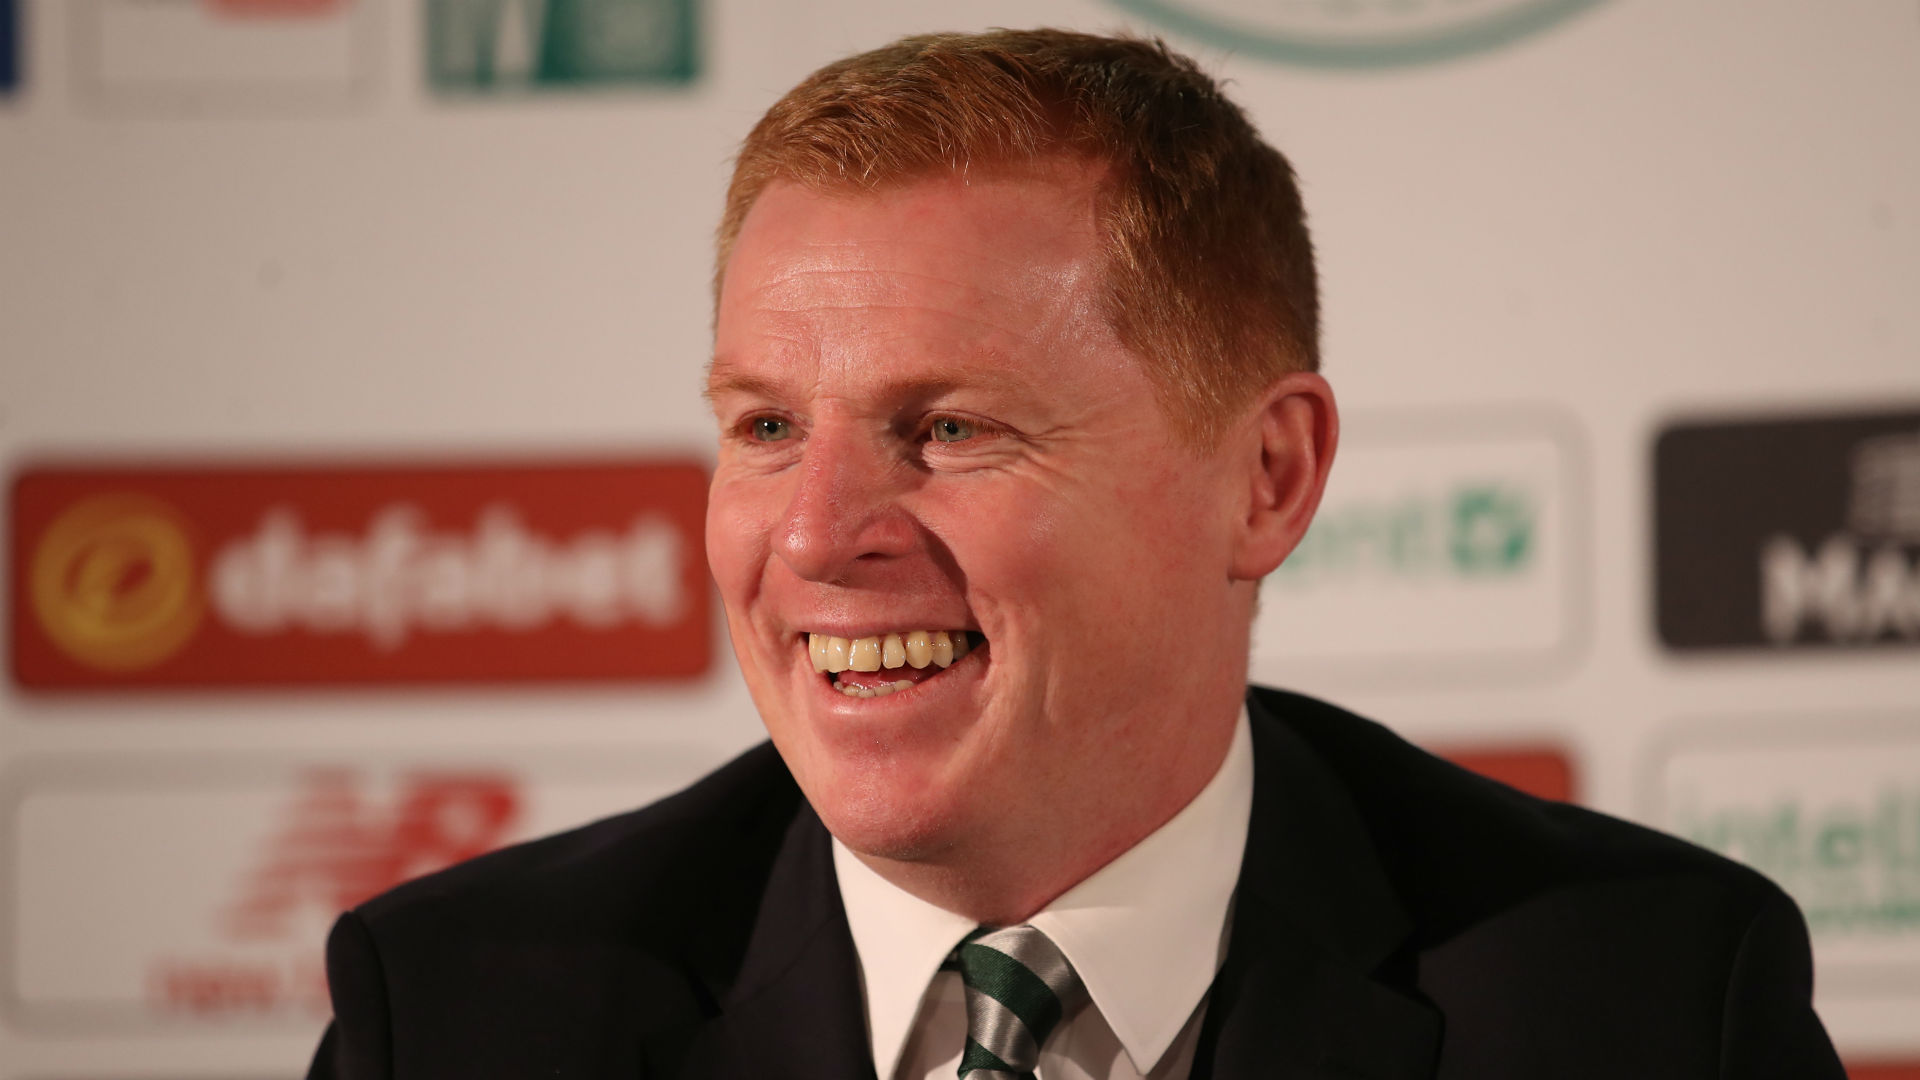 Lennon delighted to swap Speedos for Celtic job